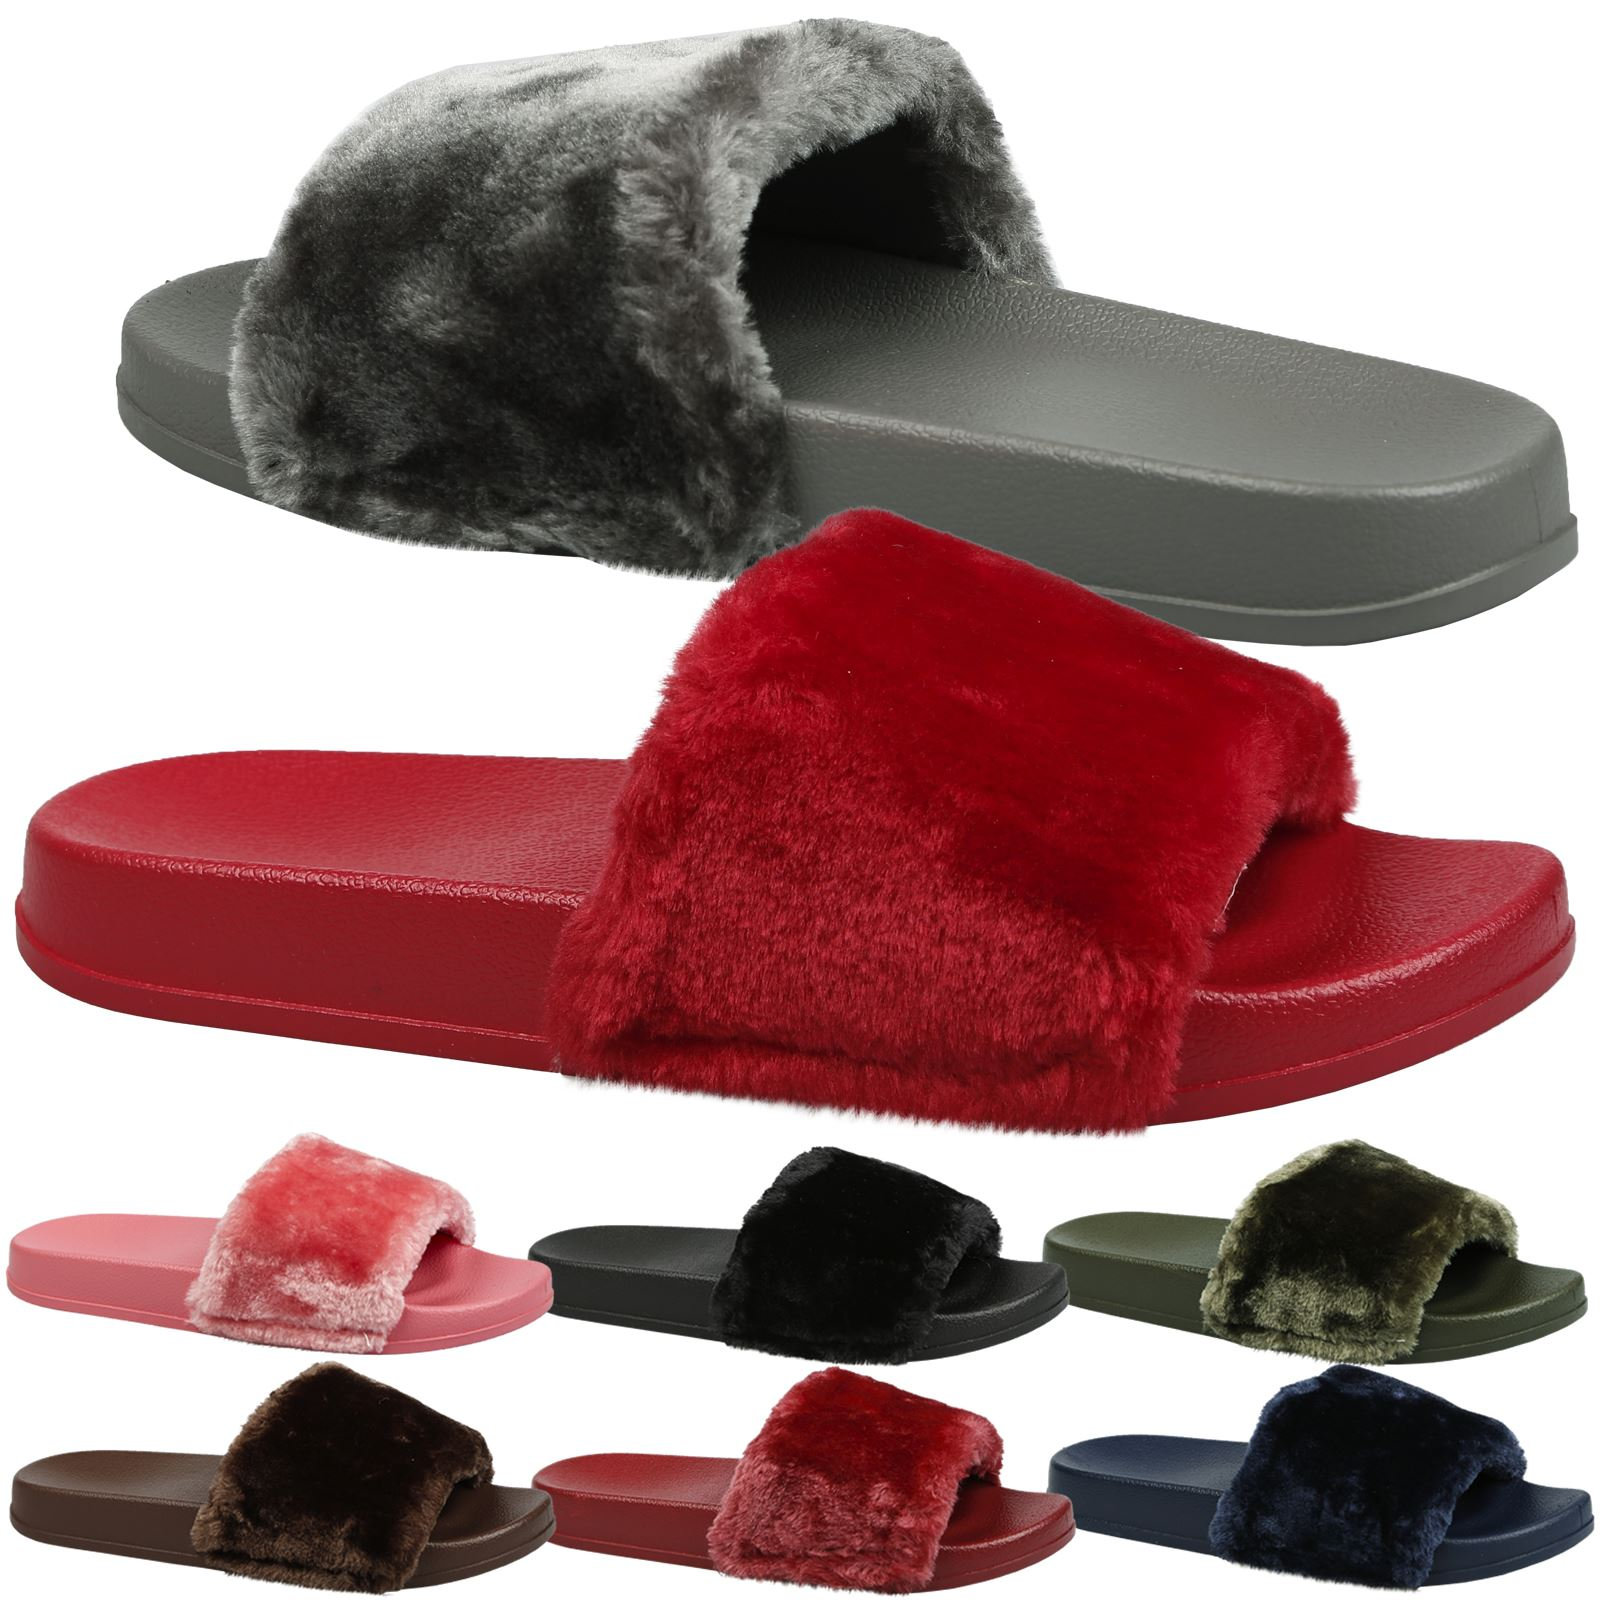 45eed206 Details about Romy Womens Slip On Fur Flats Sandals Flip Flops Ladies Shoes  Sliders Size New